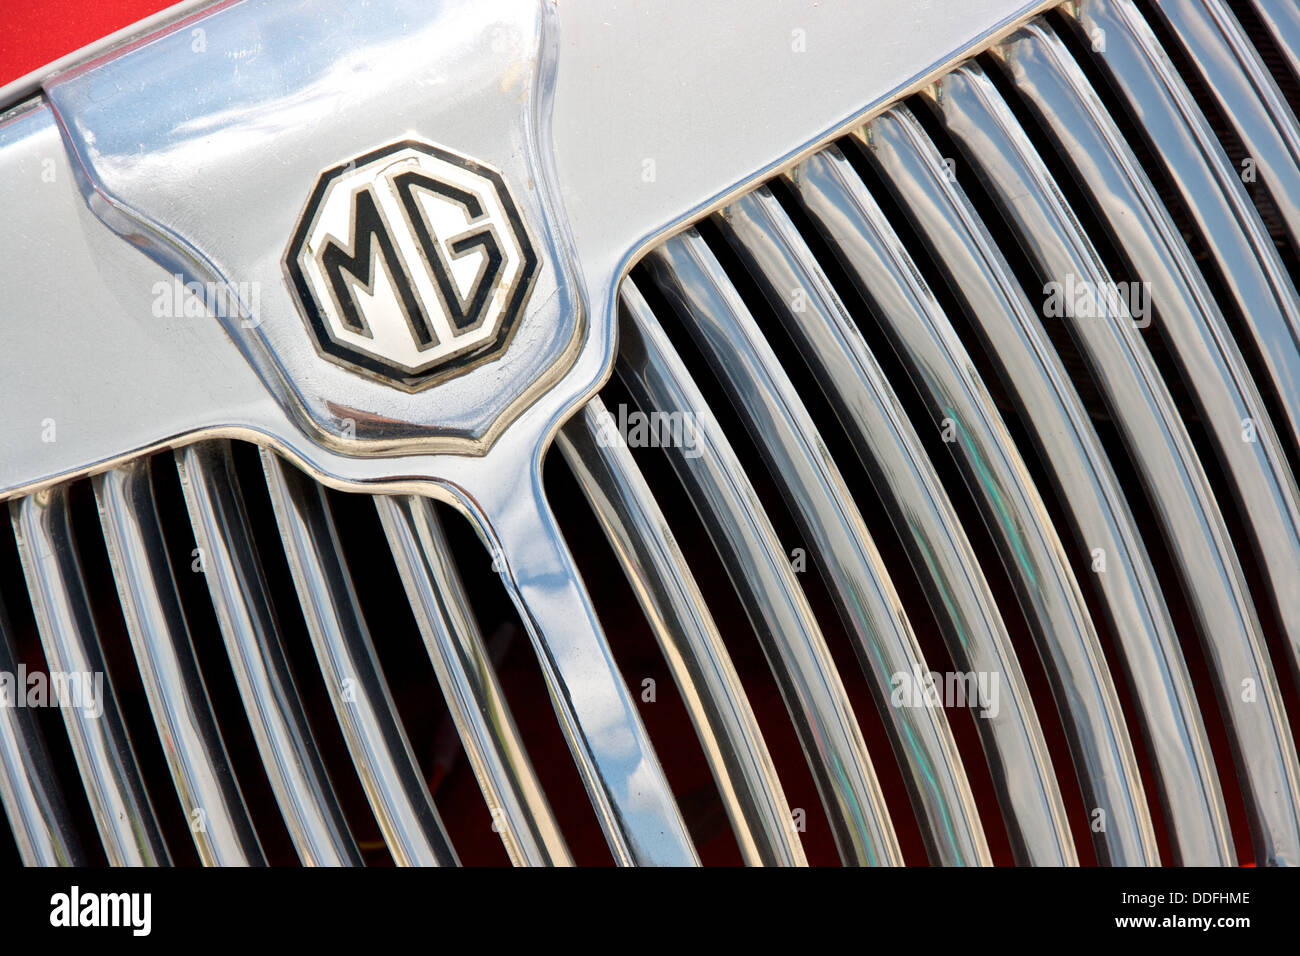 1950's MG sports car front chrome grill and badge marque close-up - Stock Image